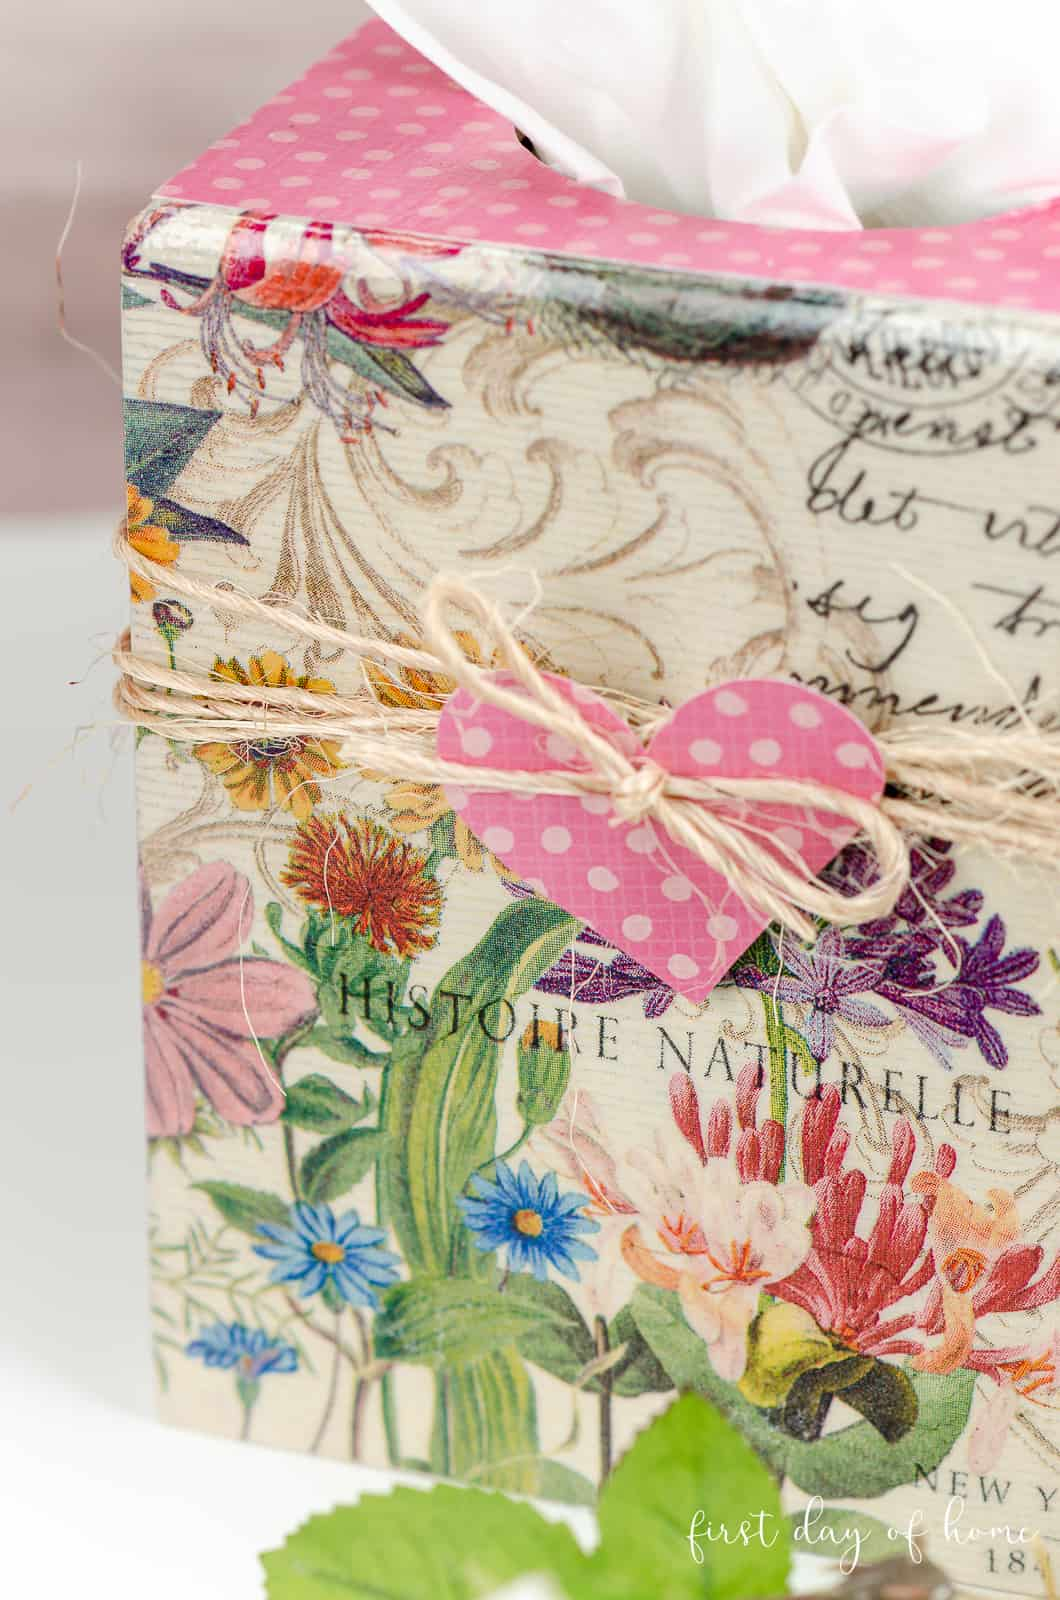 Close up of wooden DIY tissue box cover made by decoupaging napkins with Mod Podge